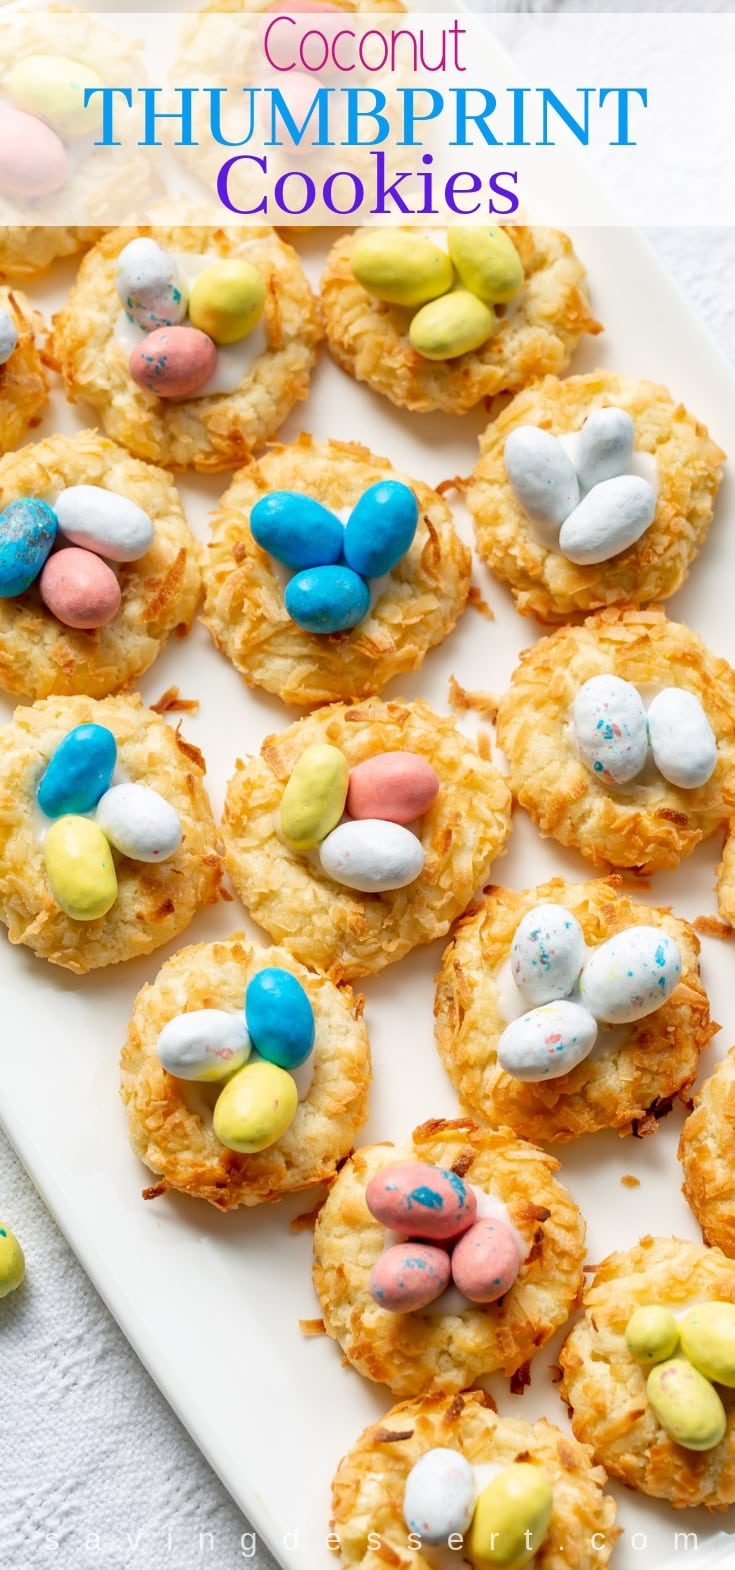 Coconut Thumbprint Cookies decorated with speckled candy eggs. #cookie #Easter #springtime #coconut #coconutcookie #Easterdessert #thumbprint #coconutthumbprintcookie #dessert #baking